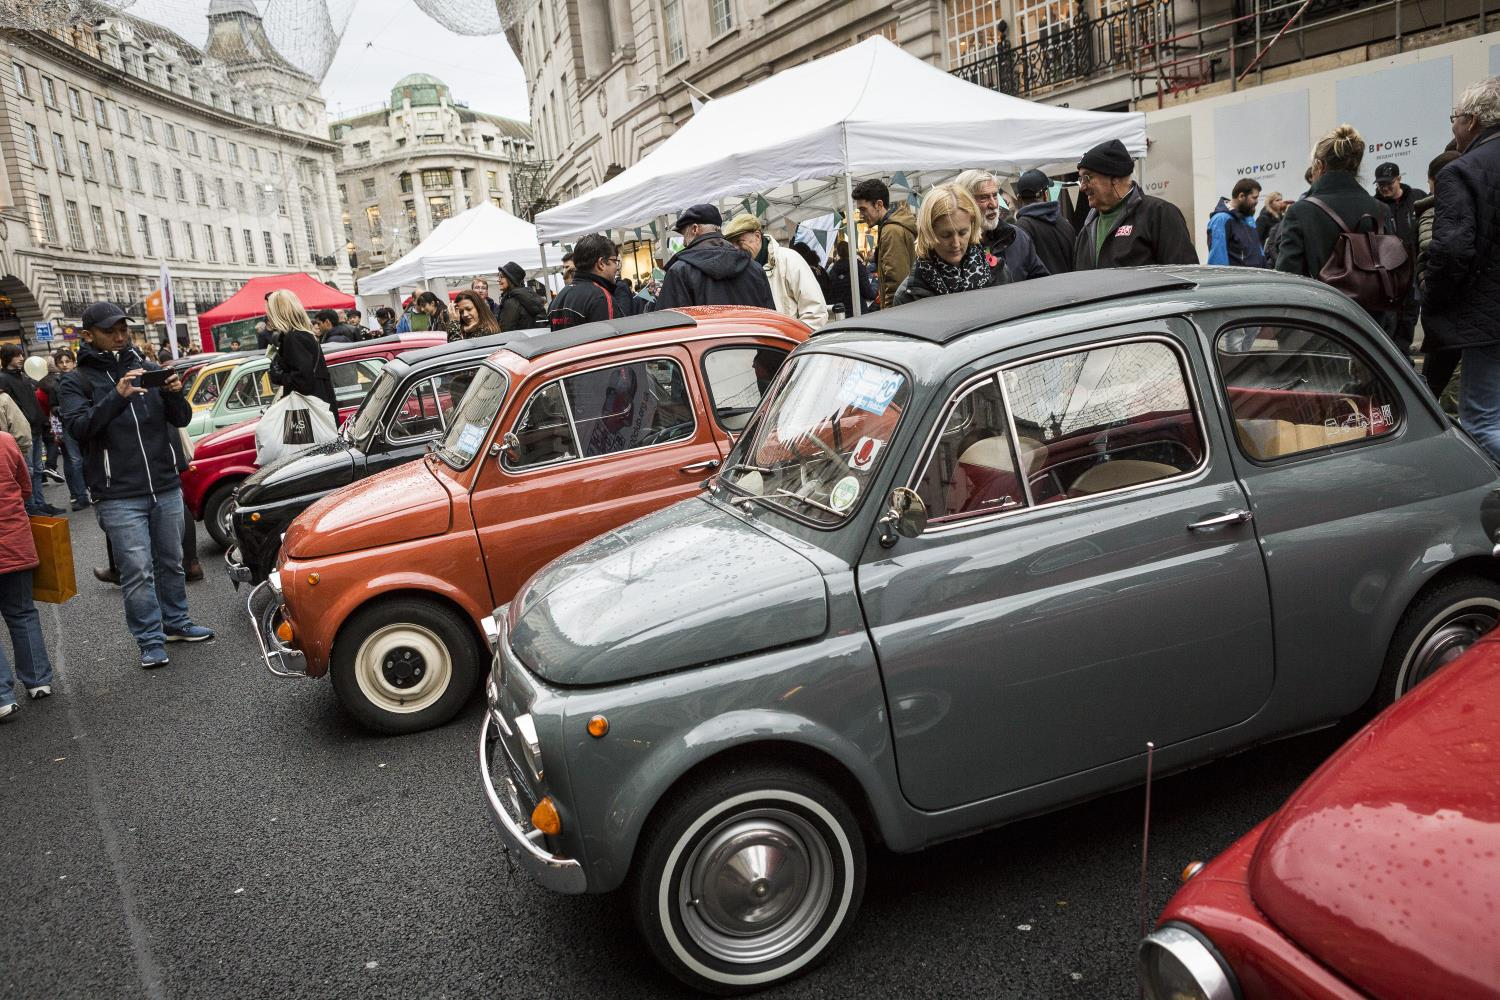 Huge crowds at the annual Regent Street Motor Show 3.jpg